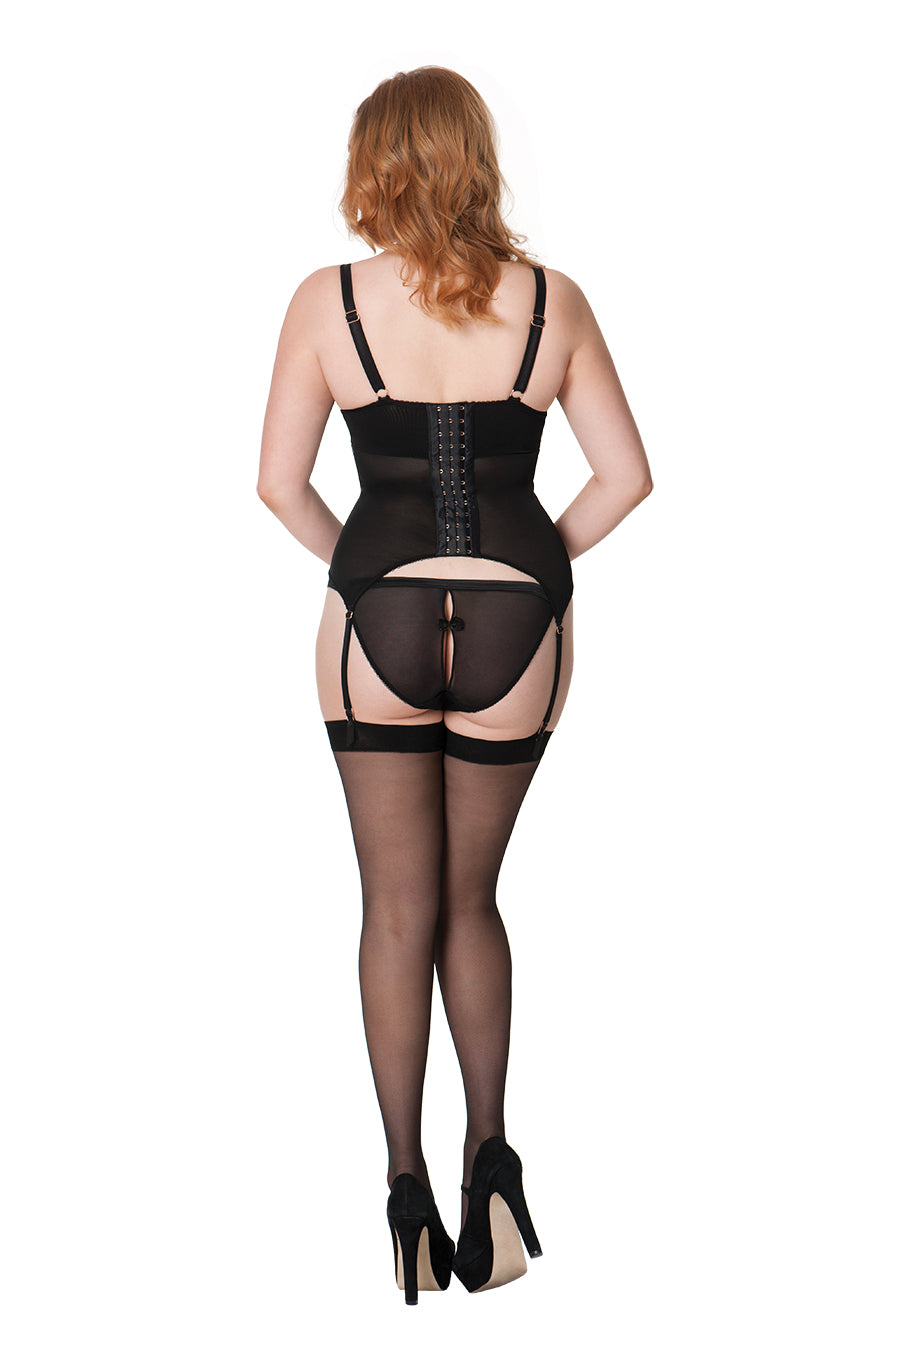 Scantilly by Curvy Kate Surrender Peep Hole Brief ST2405